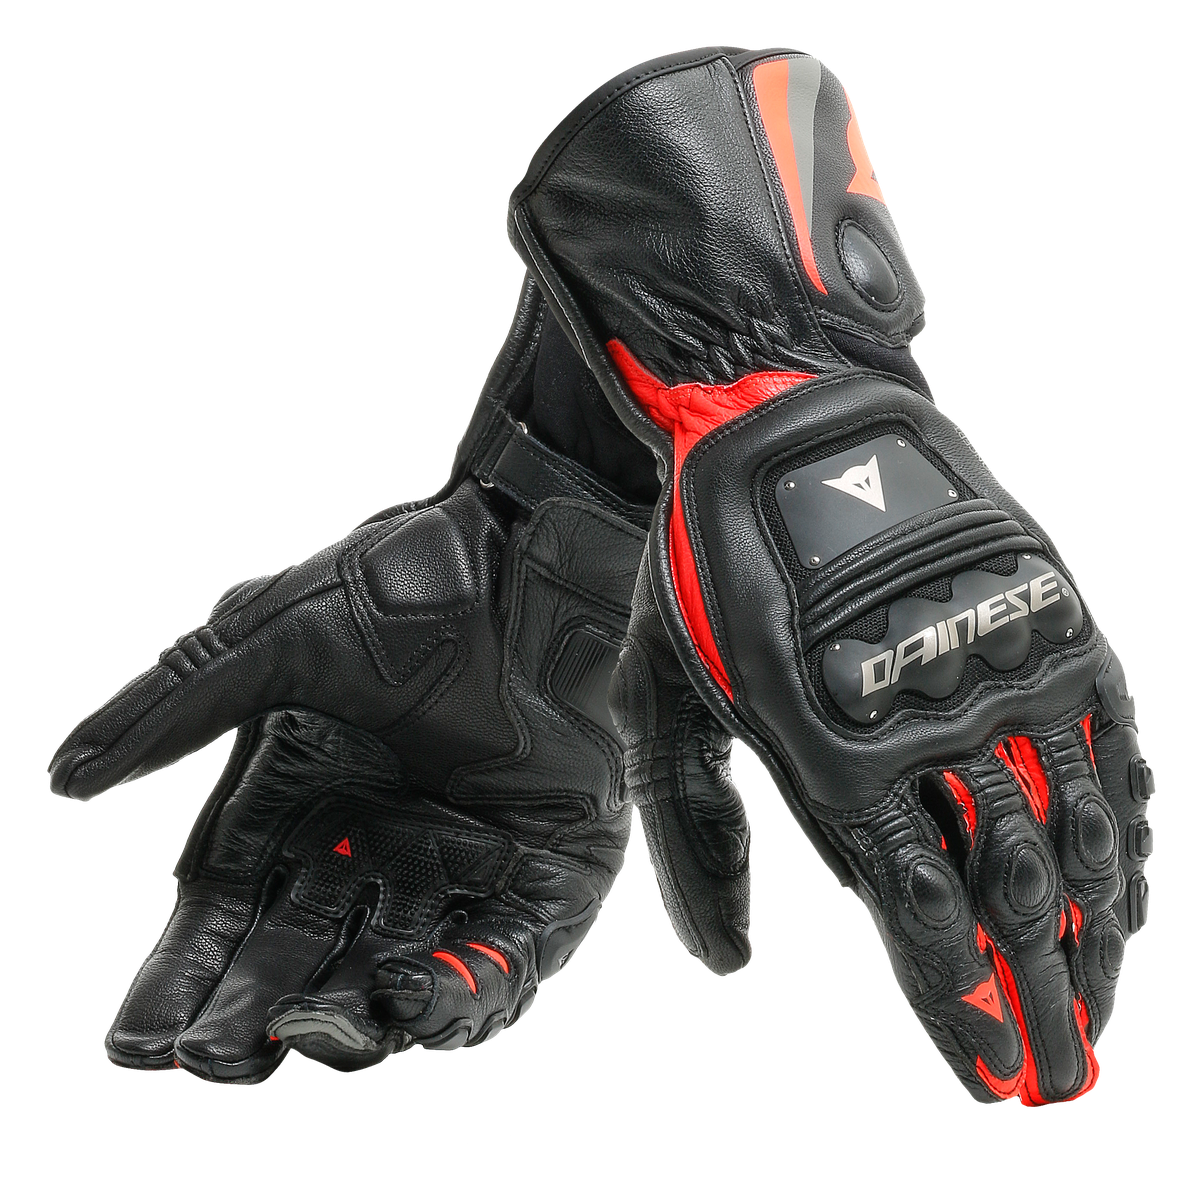 STEEL-PRO GLOVES Dainese guanto pelle racing